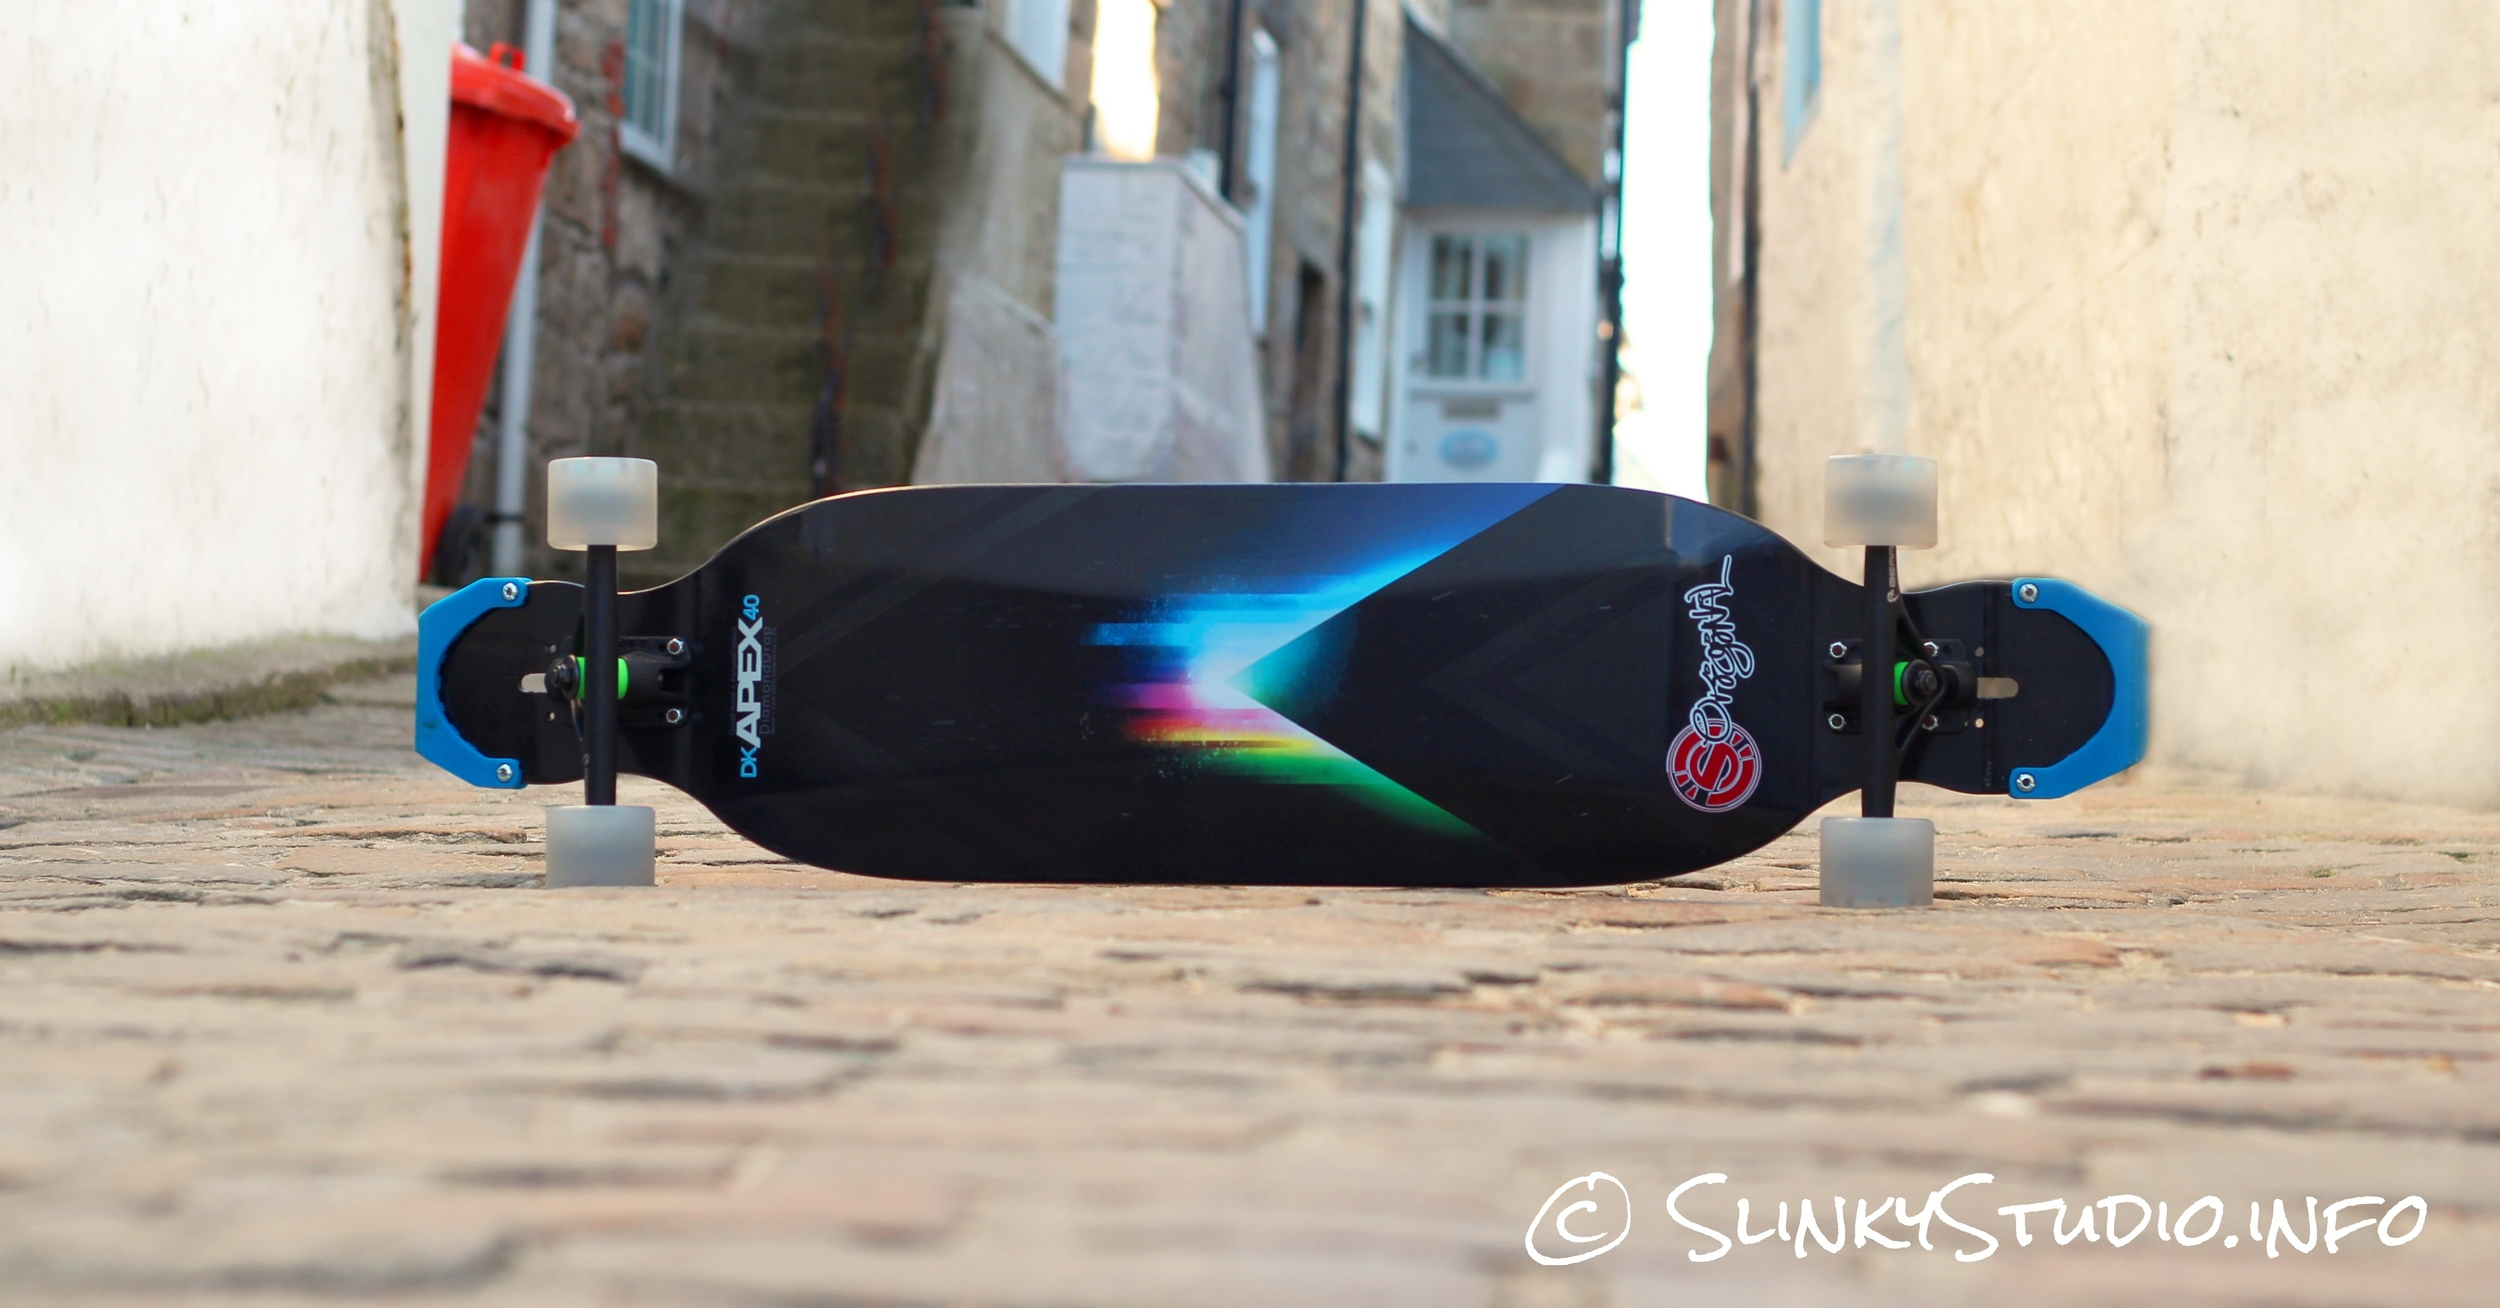 Original Skateboards Apex 40 DiamondDrop Longboard